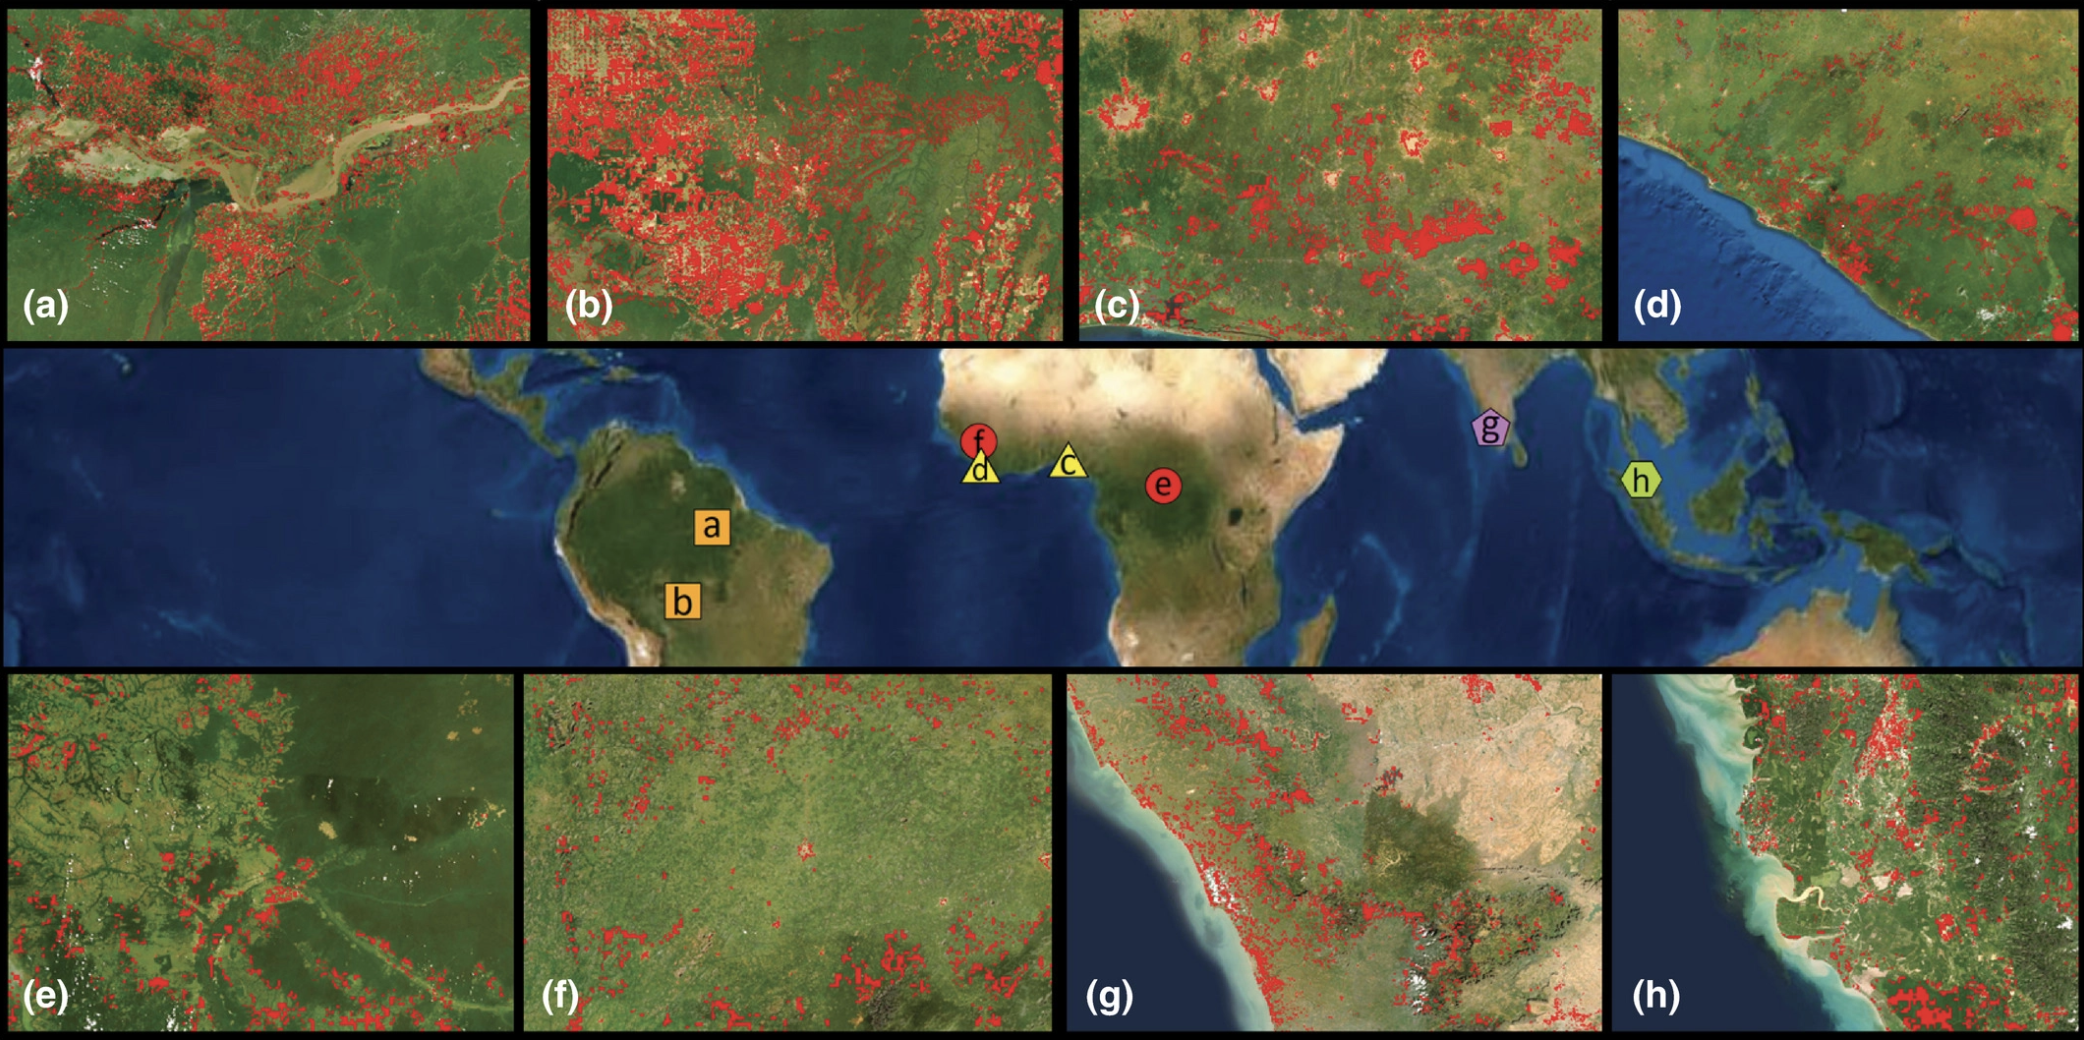 Select zoonotic disease emergence events resulting from anthropogenic disturbance of tropical forests with landcover change (red): (a, b) Hanta Virus Pulmonary Syndrome, (c, d) Lassa Fever, (e, f) Ebola, (g) Kyasanur Forest Disease, and (h) Nipah. Data source: ESA Climate Change Initiative © ‐ Land Cover led by UCLouvain (2017); ESRI, Maxar, Geosys, Earthstar Geographics, CNES/Airbus DS. USDA, USGS, AeroRID, IGN, and the GIS User Community